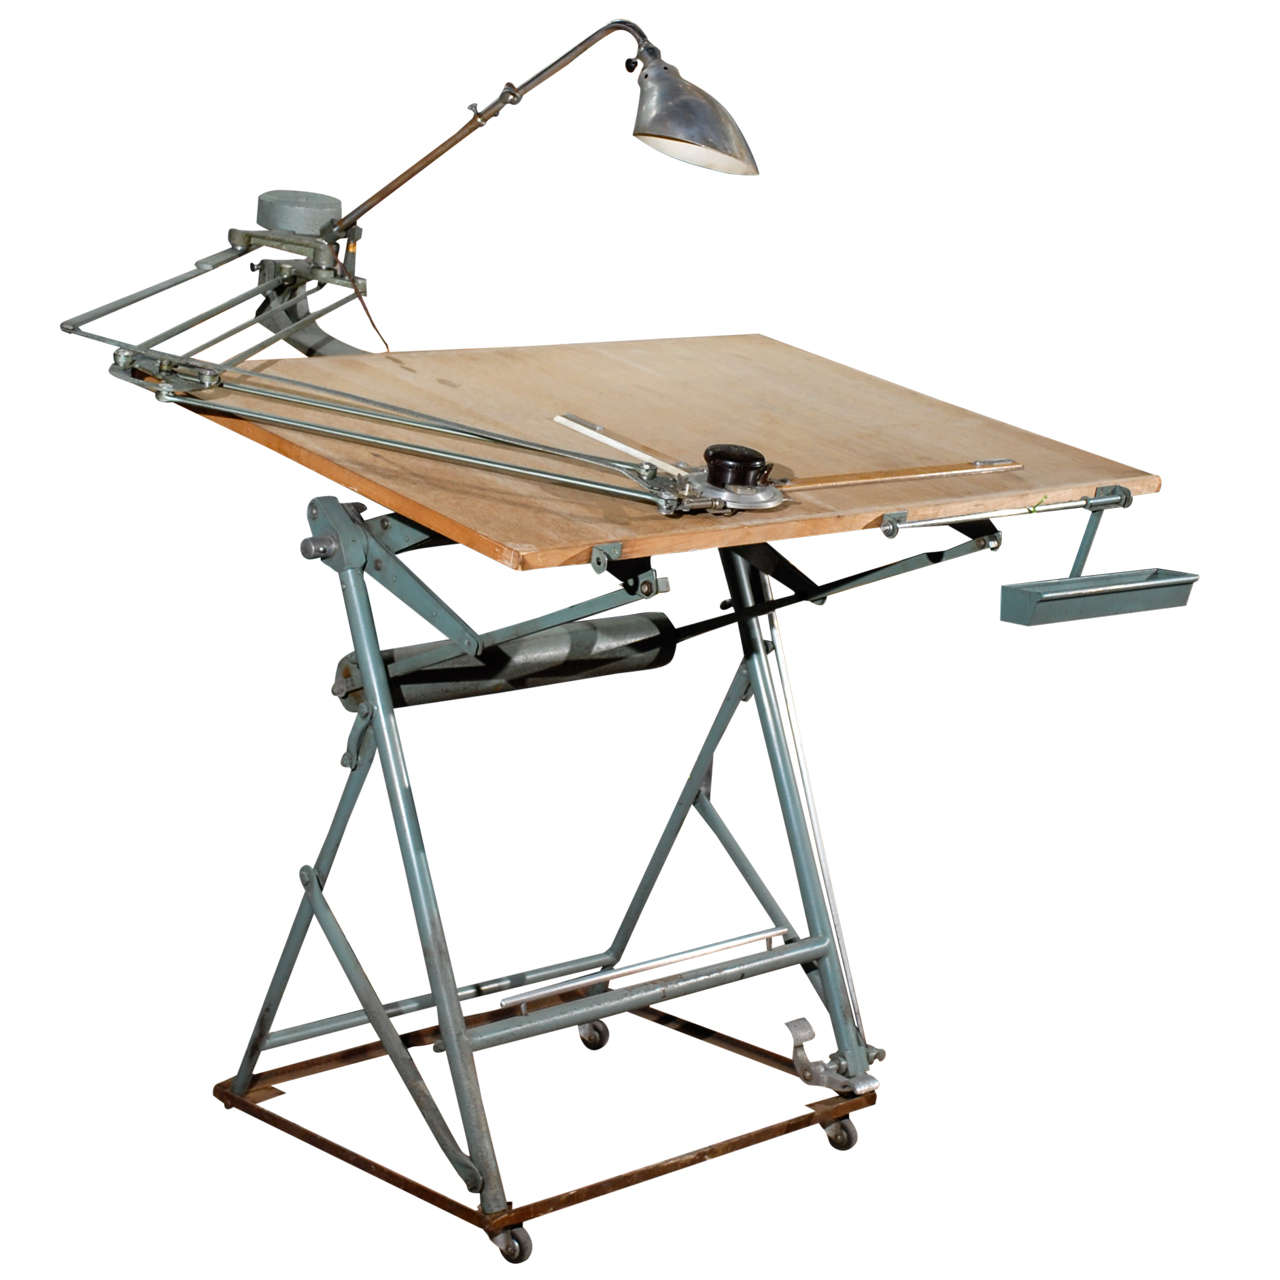 Portable drafting table beautiful blundell harling a challenge ferndown portable drawing board - Drafting table designs ...